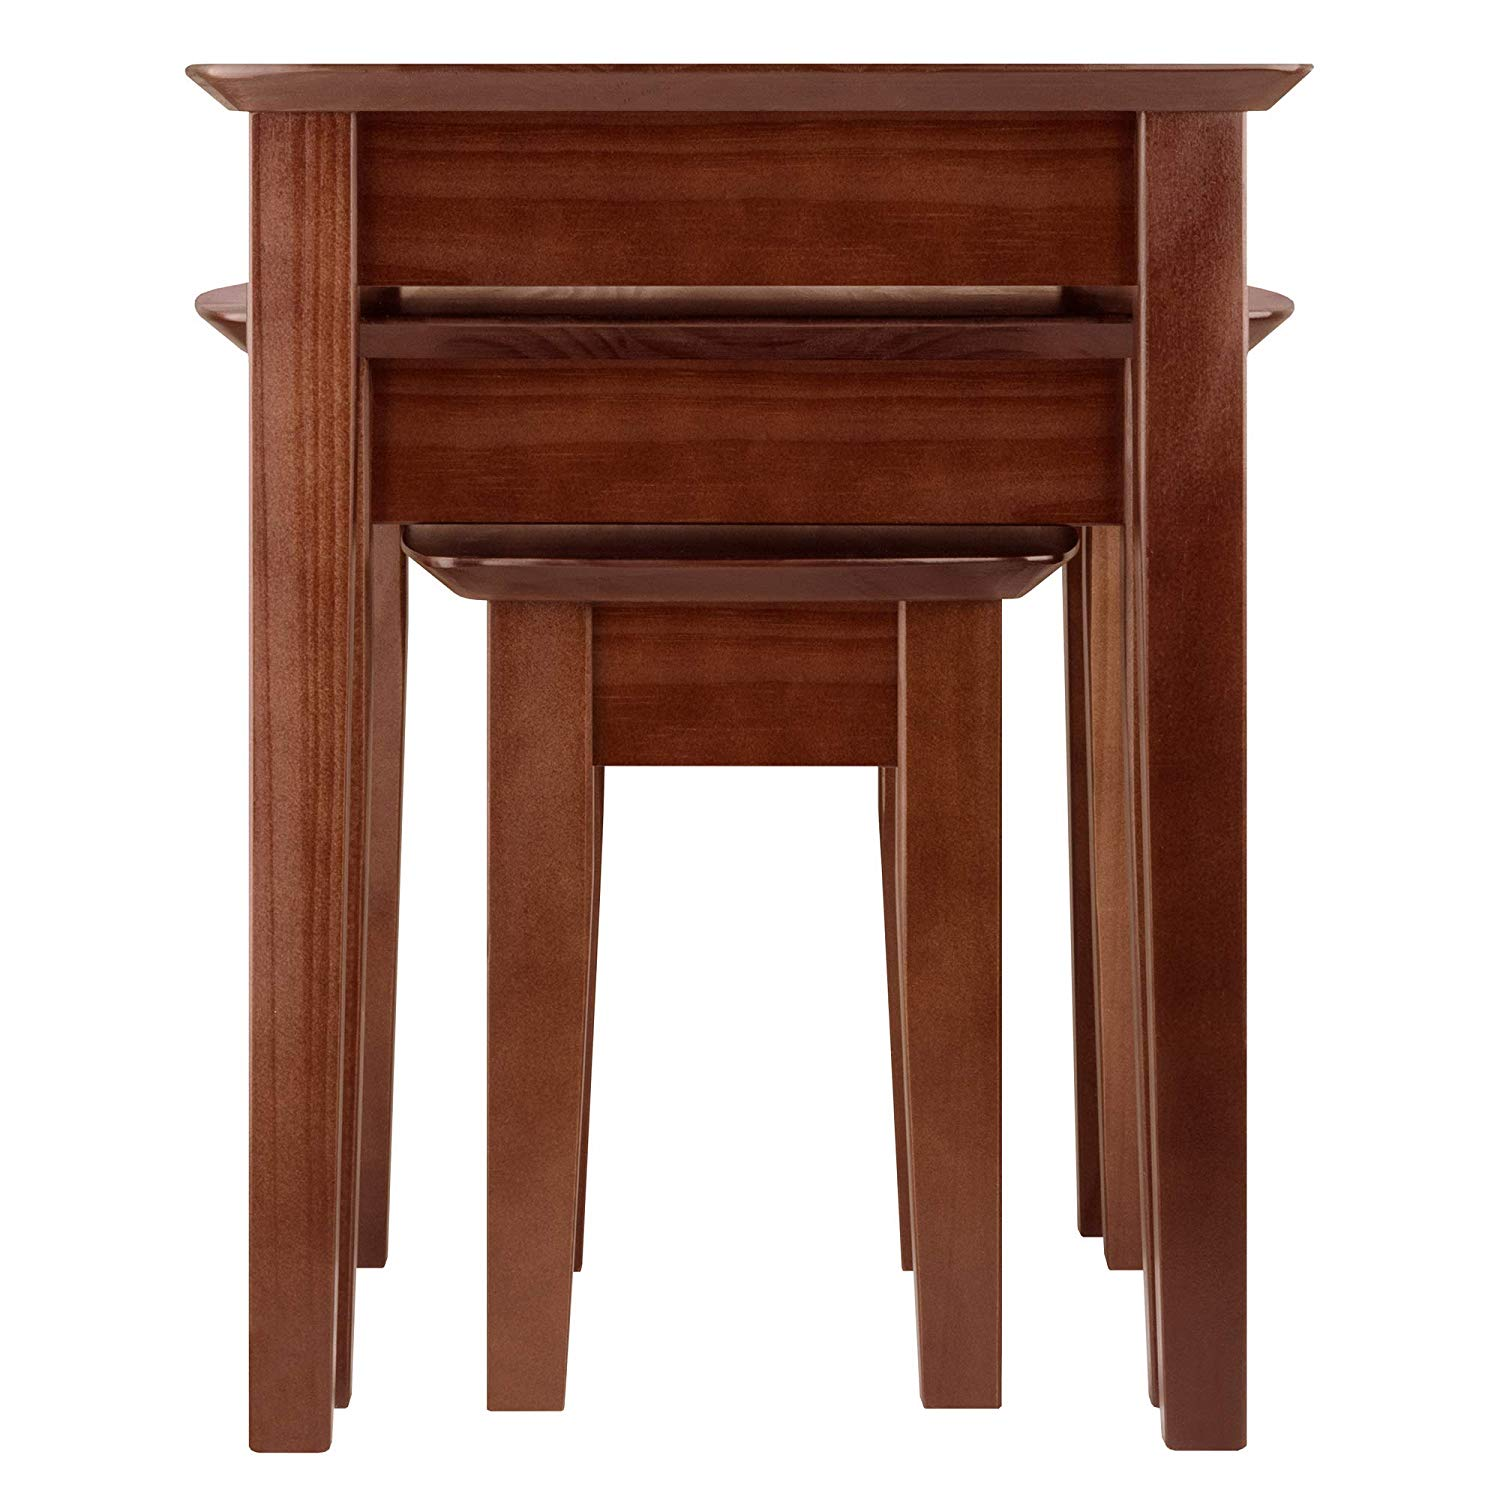 winsome wood bradley accent table antique walnut kitchen dining unfinished bedside round glass small nate berkus gold coffee nautical sheesham home goods website chests and